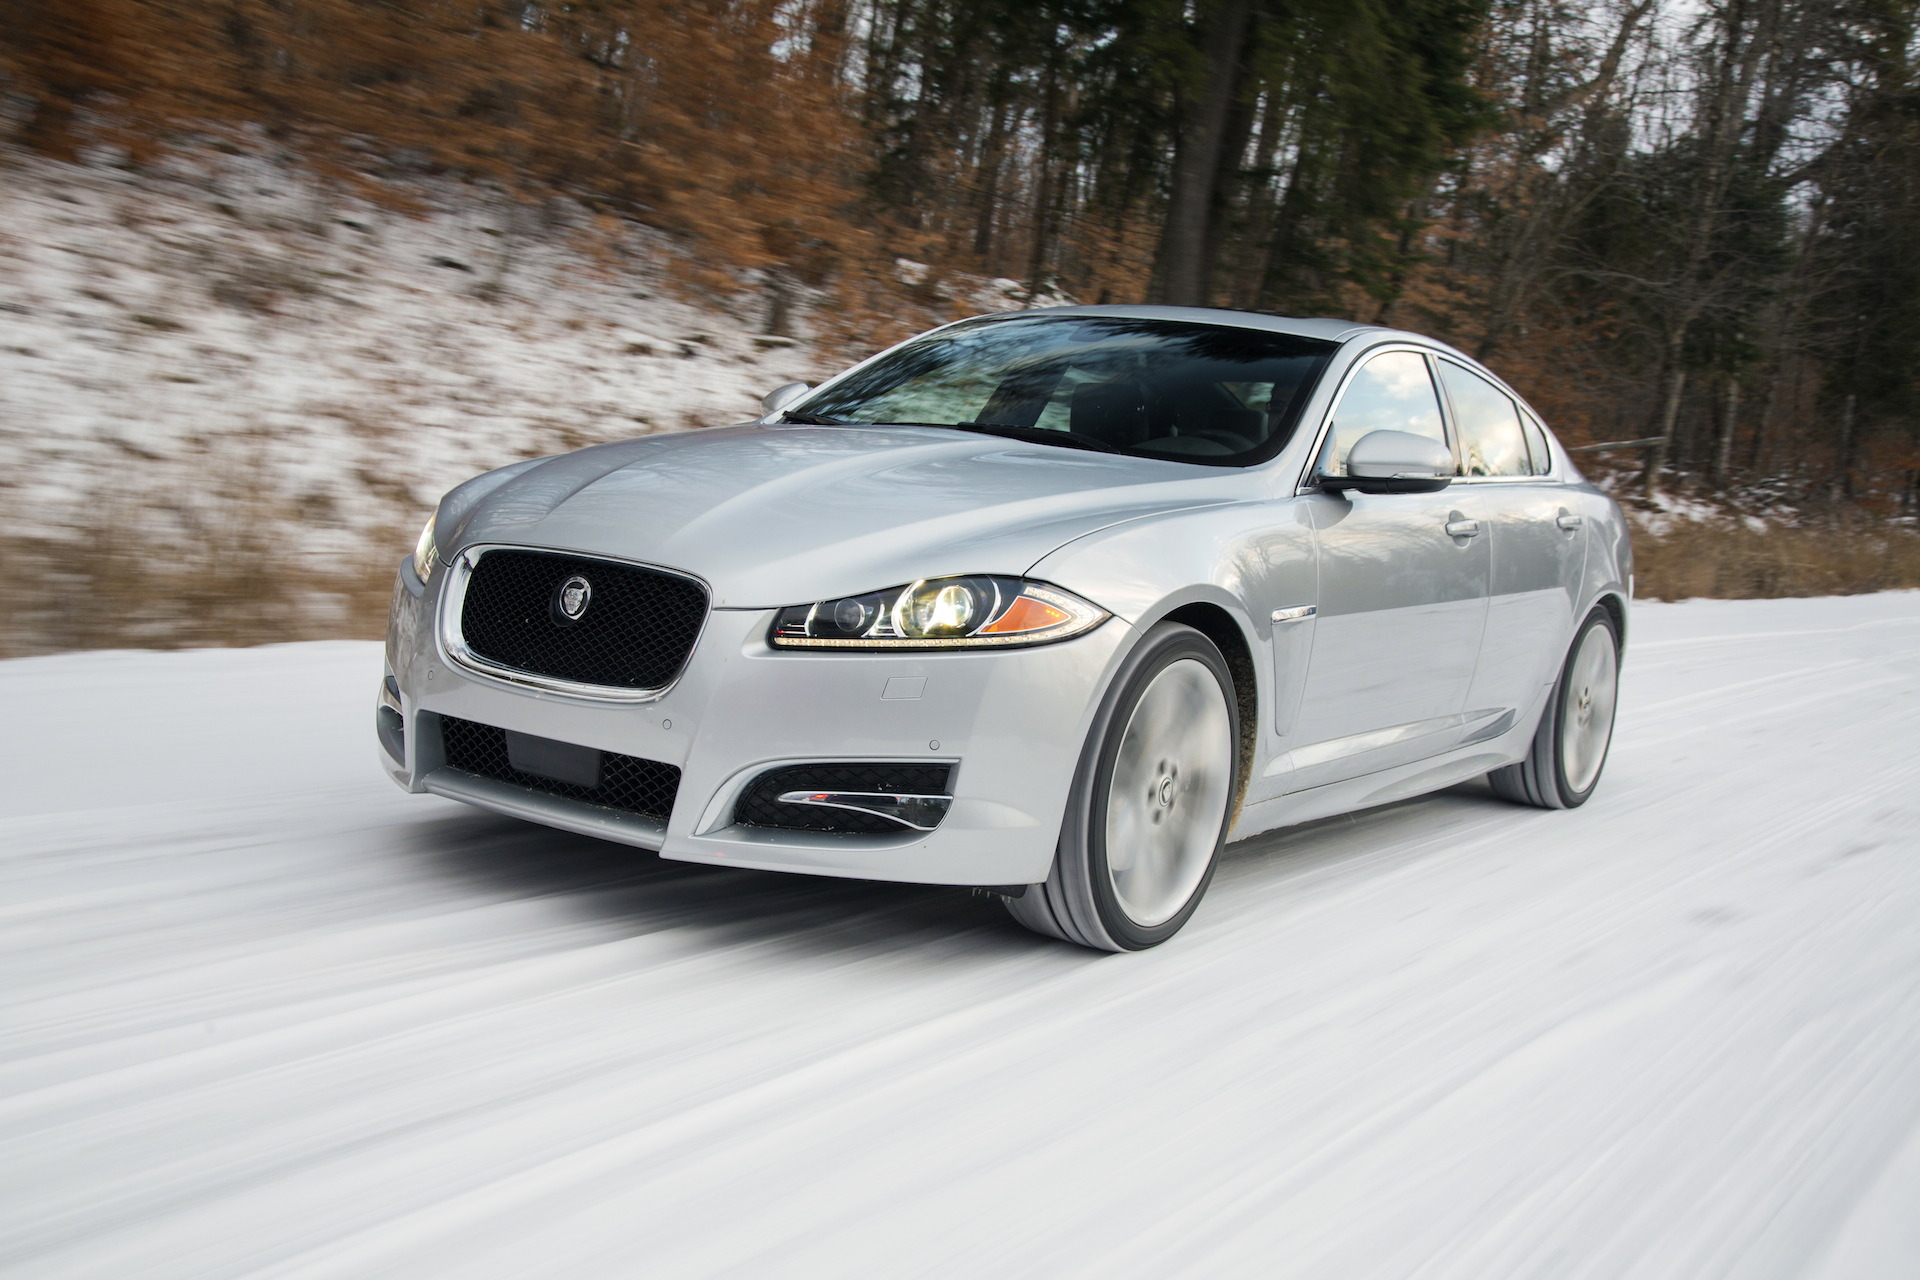 2015 Jaguar Xf Review Ratings Specs Prices And Photos The Car Connection